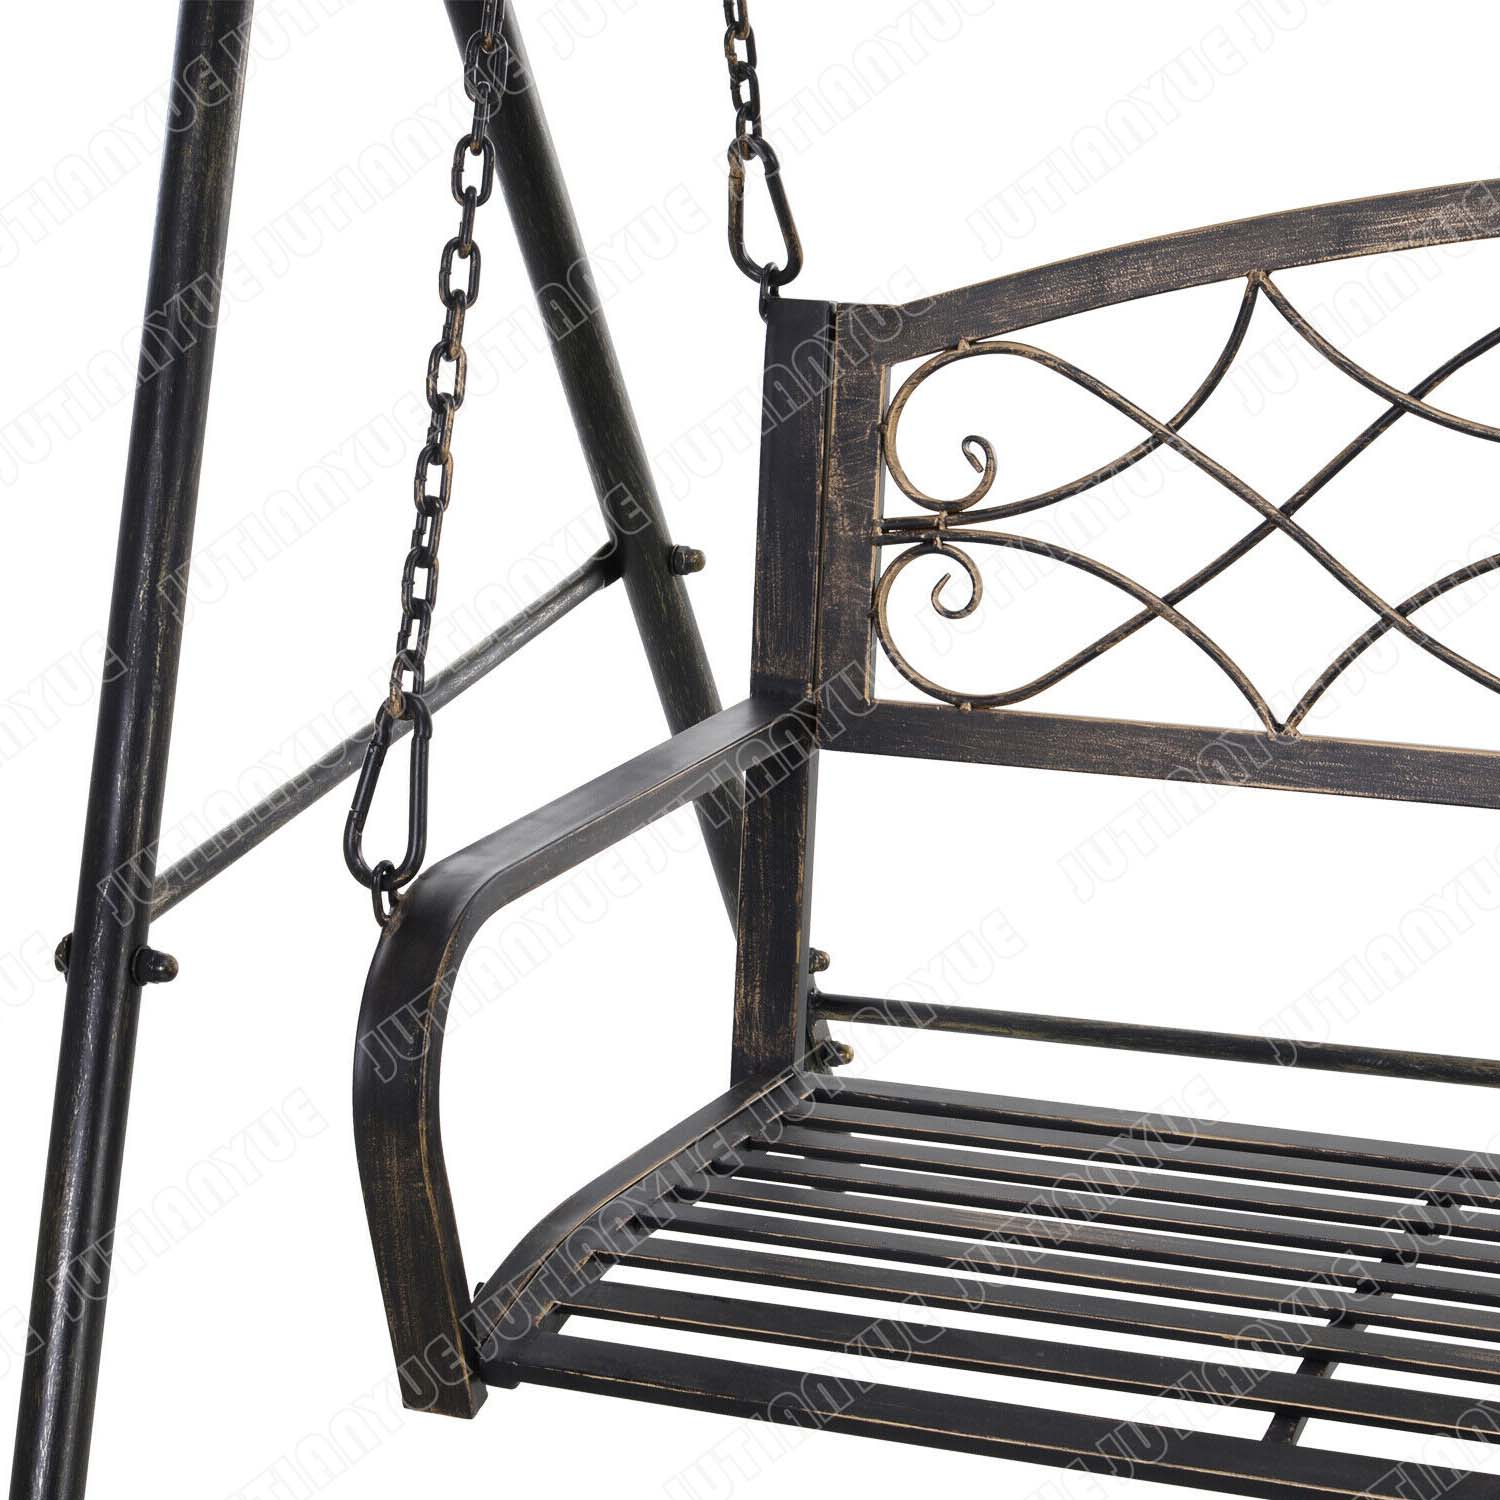 Garden 2 Seat Free Standing Metal Porch Swing Chair Bench With Stand Set Buy Metal Patio Chiar Swing Bench Swing Glider Chair Product On Alibaba Com